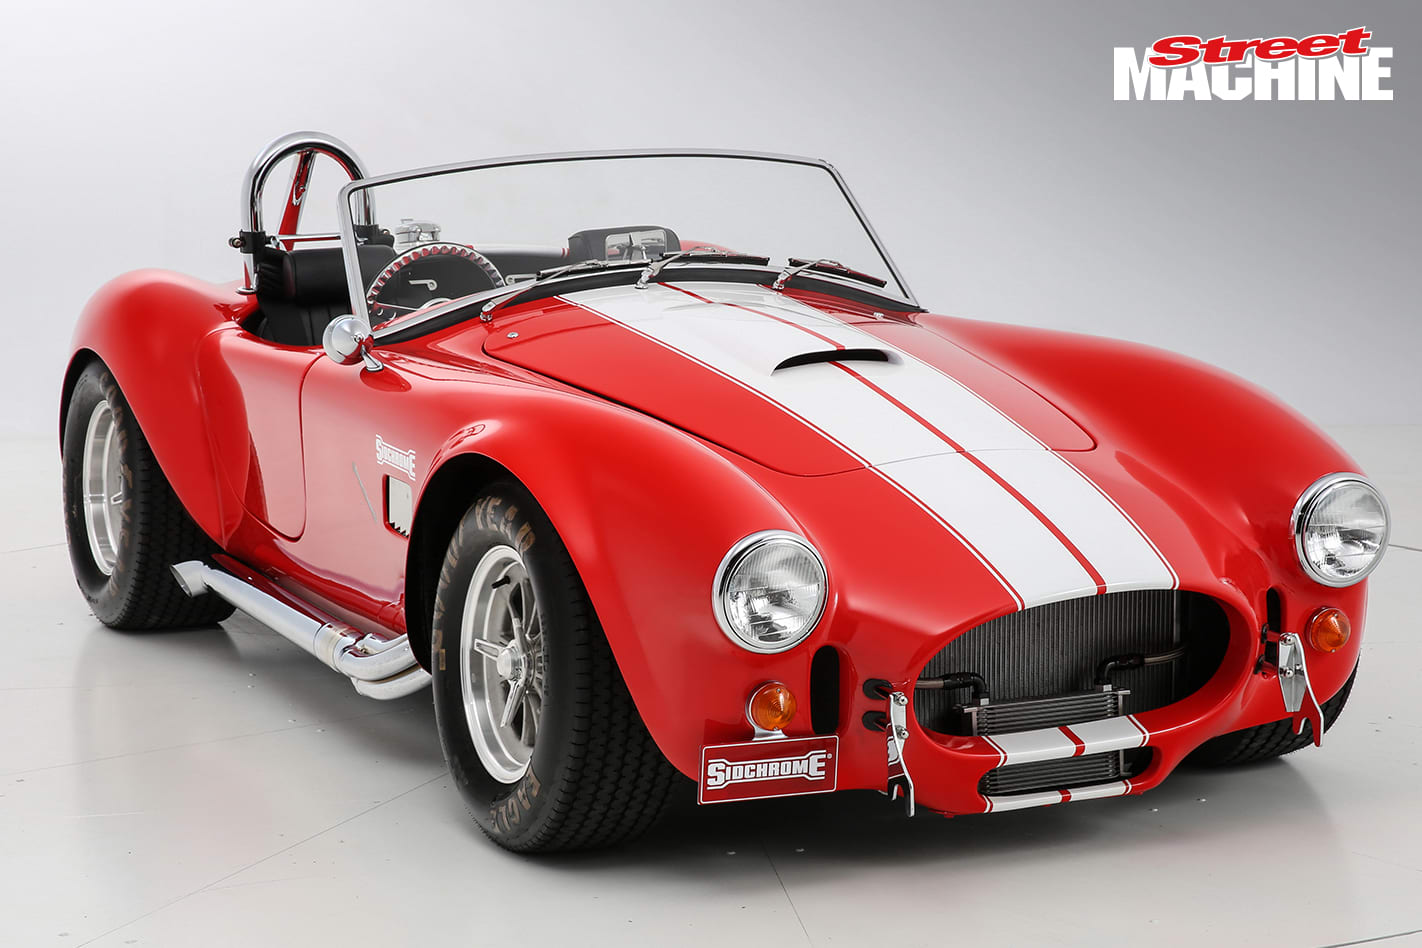 Ford Cobra Sidchrome Project Car